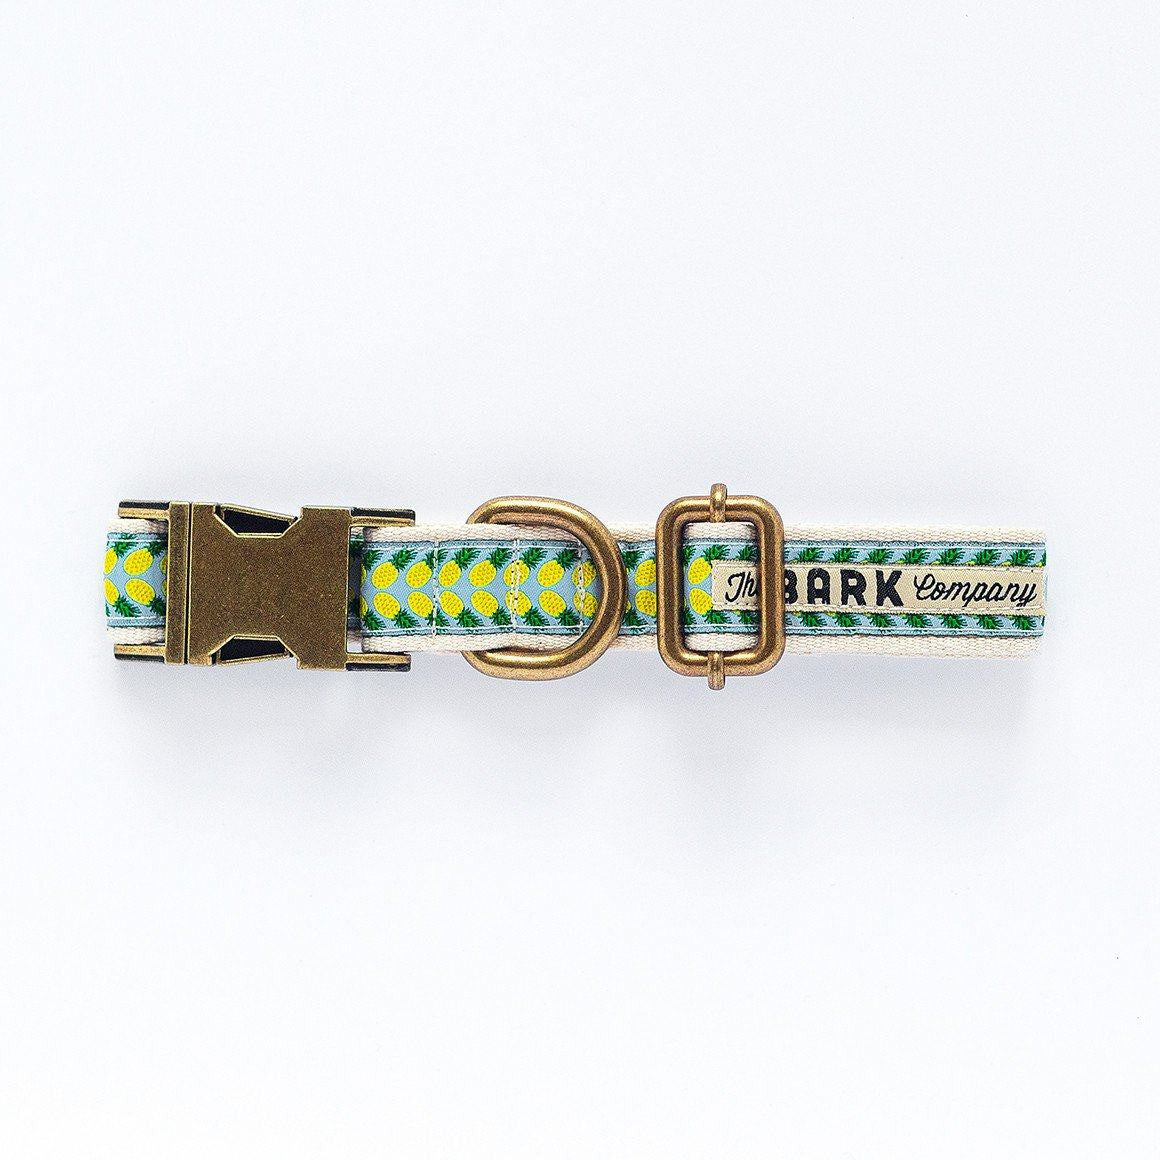 Pineapple dog collar from The Bark Co - 1